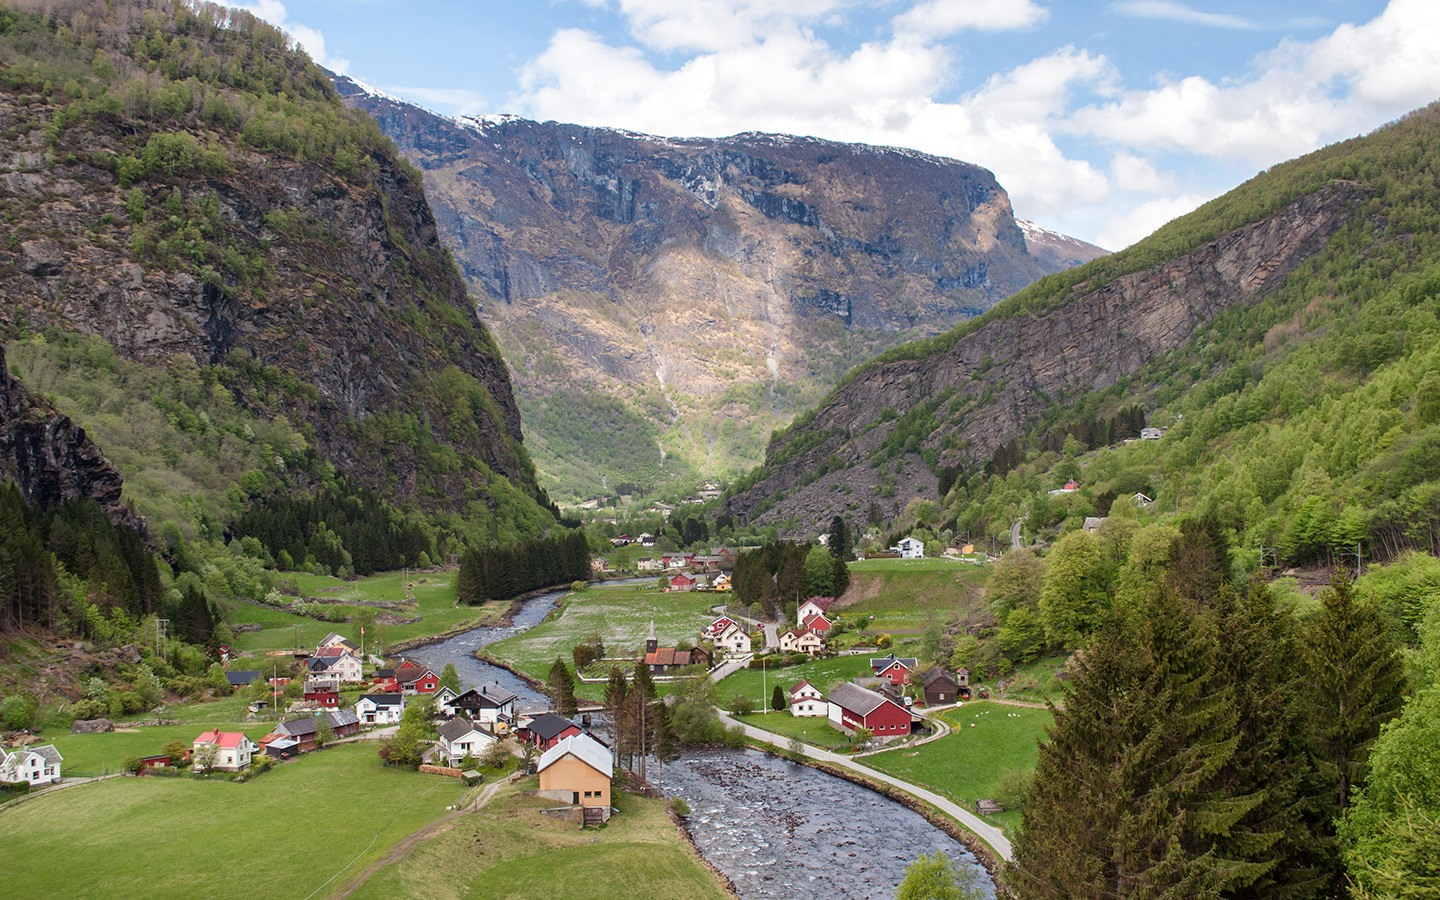 Looking down the Flam Valley in Norway